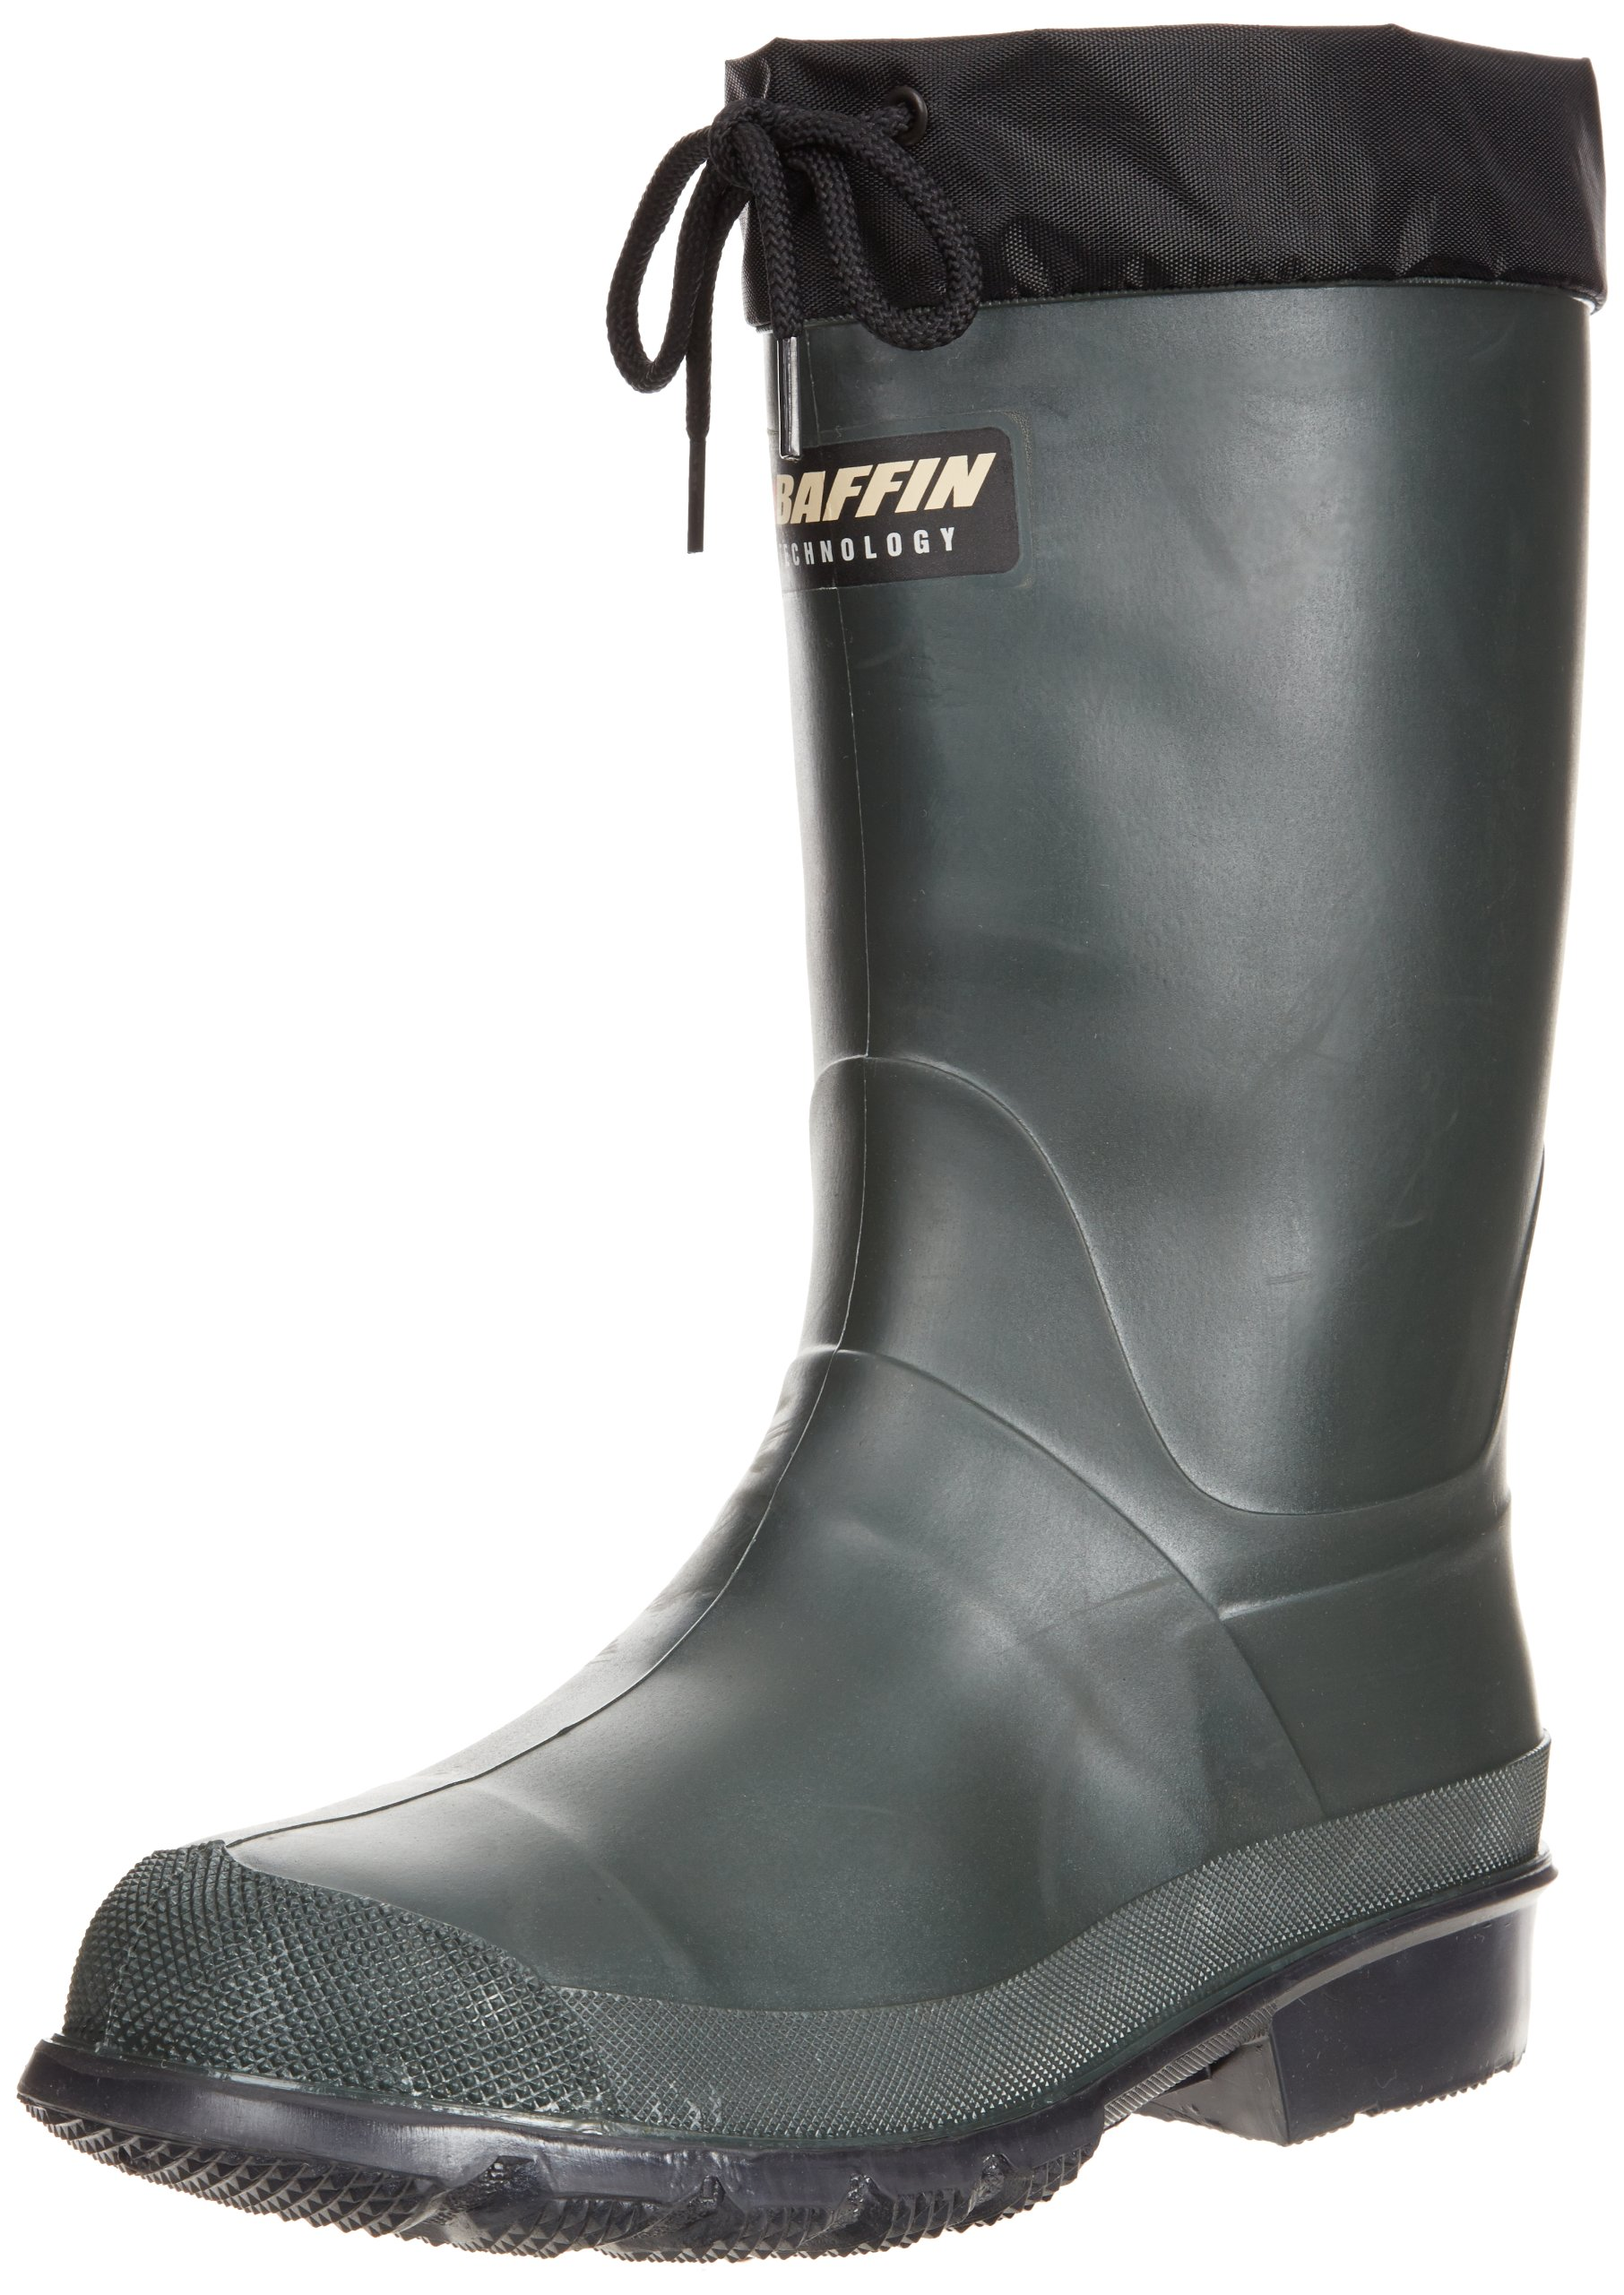 Baffin Men's Hunter PT Forest Black Hunting Boot,Forest/Black,9 M US by Baffin